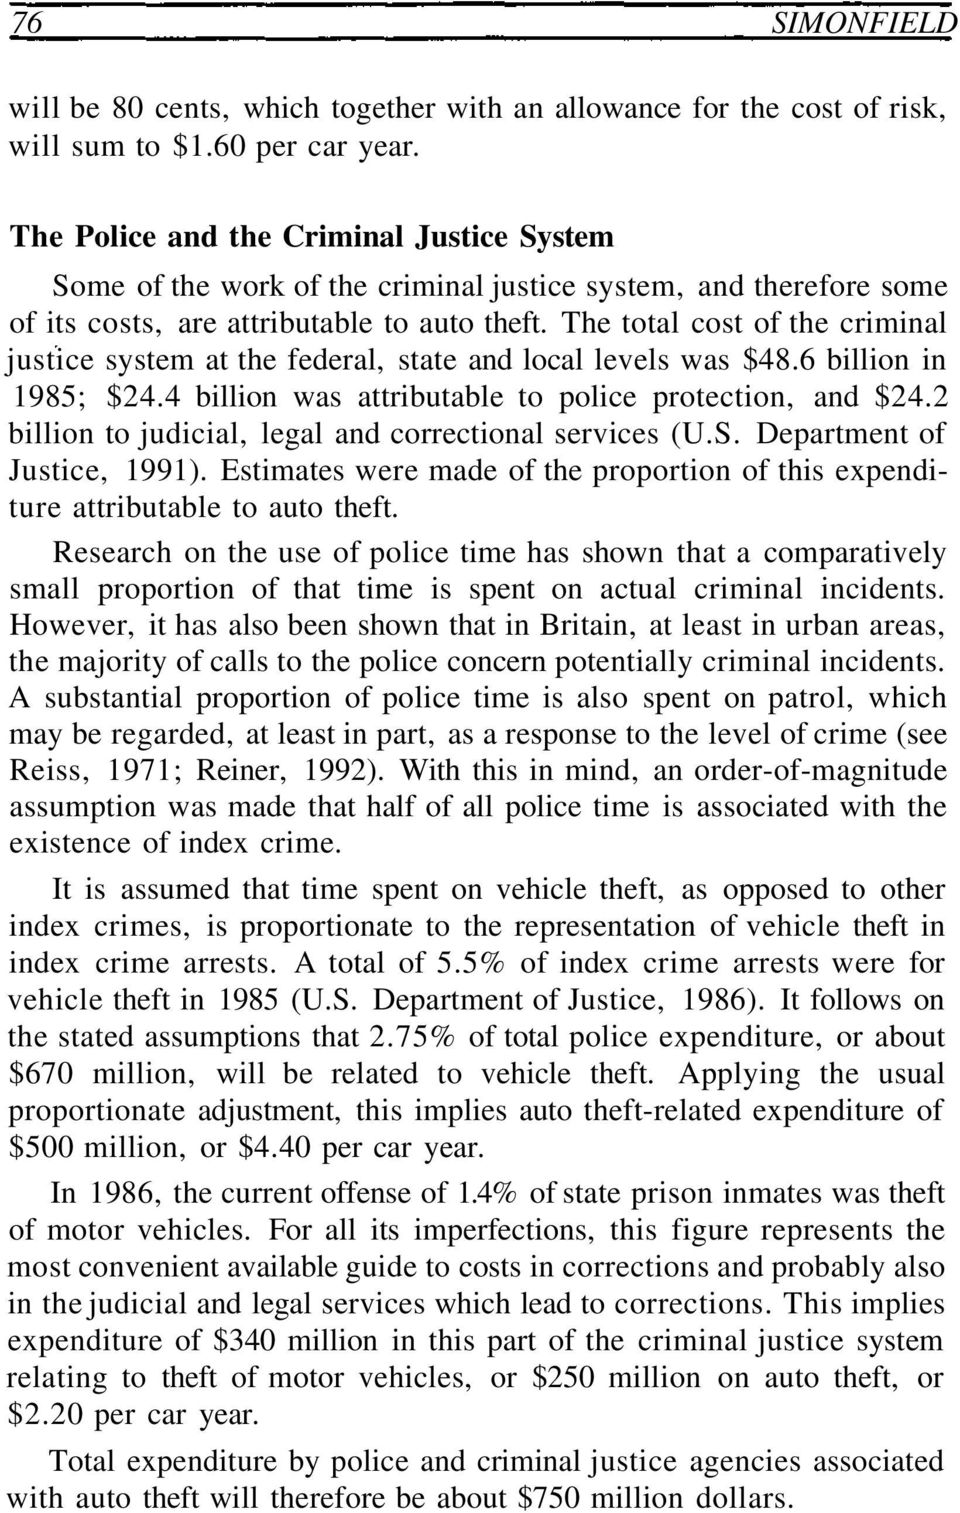 The total cost of the criminal justice system at the federal, state and local levels was $48.6 billion in 1985; $24.4 billion was attributable to police protection, and $24.